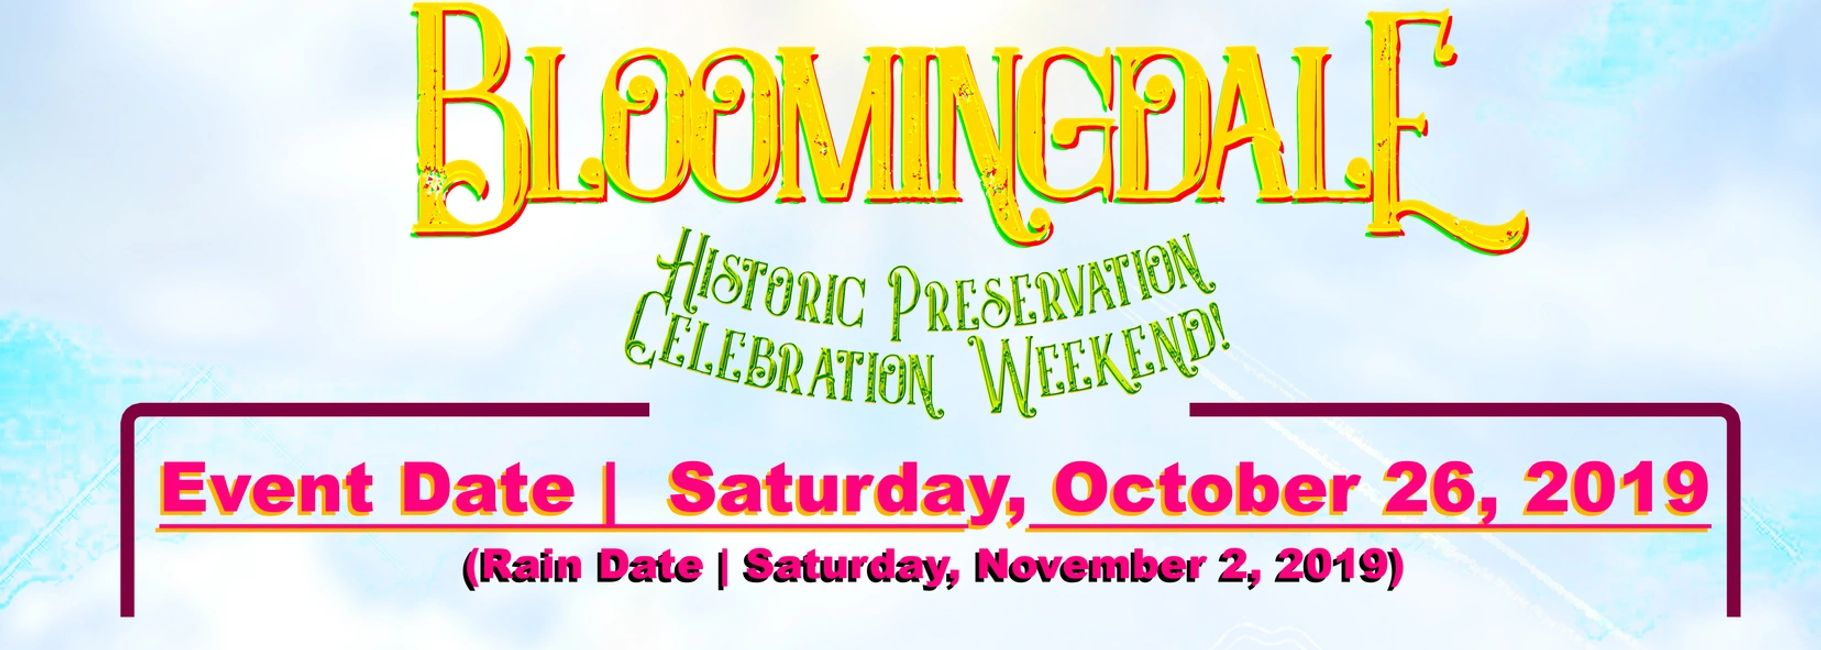 "2nd Annual ""Bloomingdale Historic Preservation Celebration Event""!! Sept 26, 2019 from 10am-7pm"